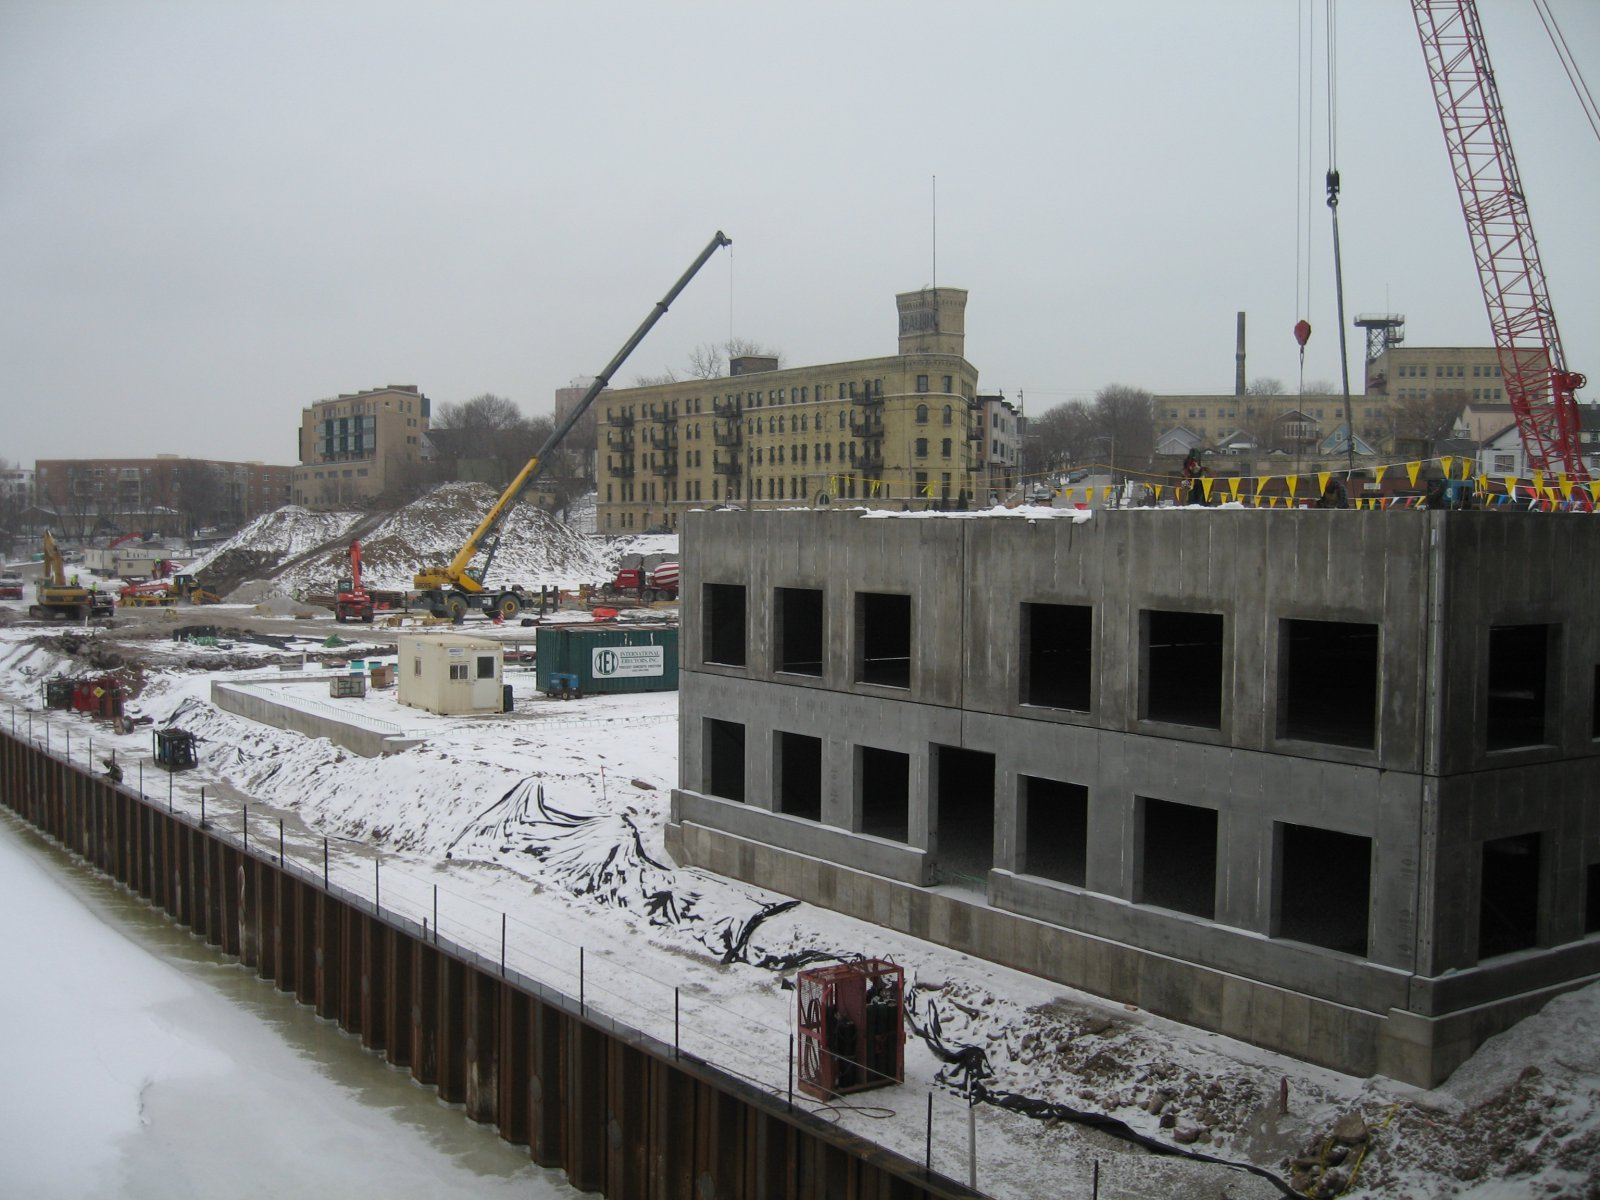 Construction of the River House apartment complex